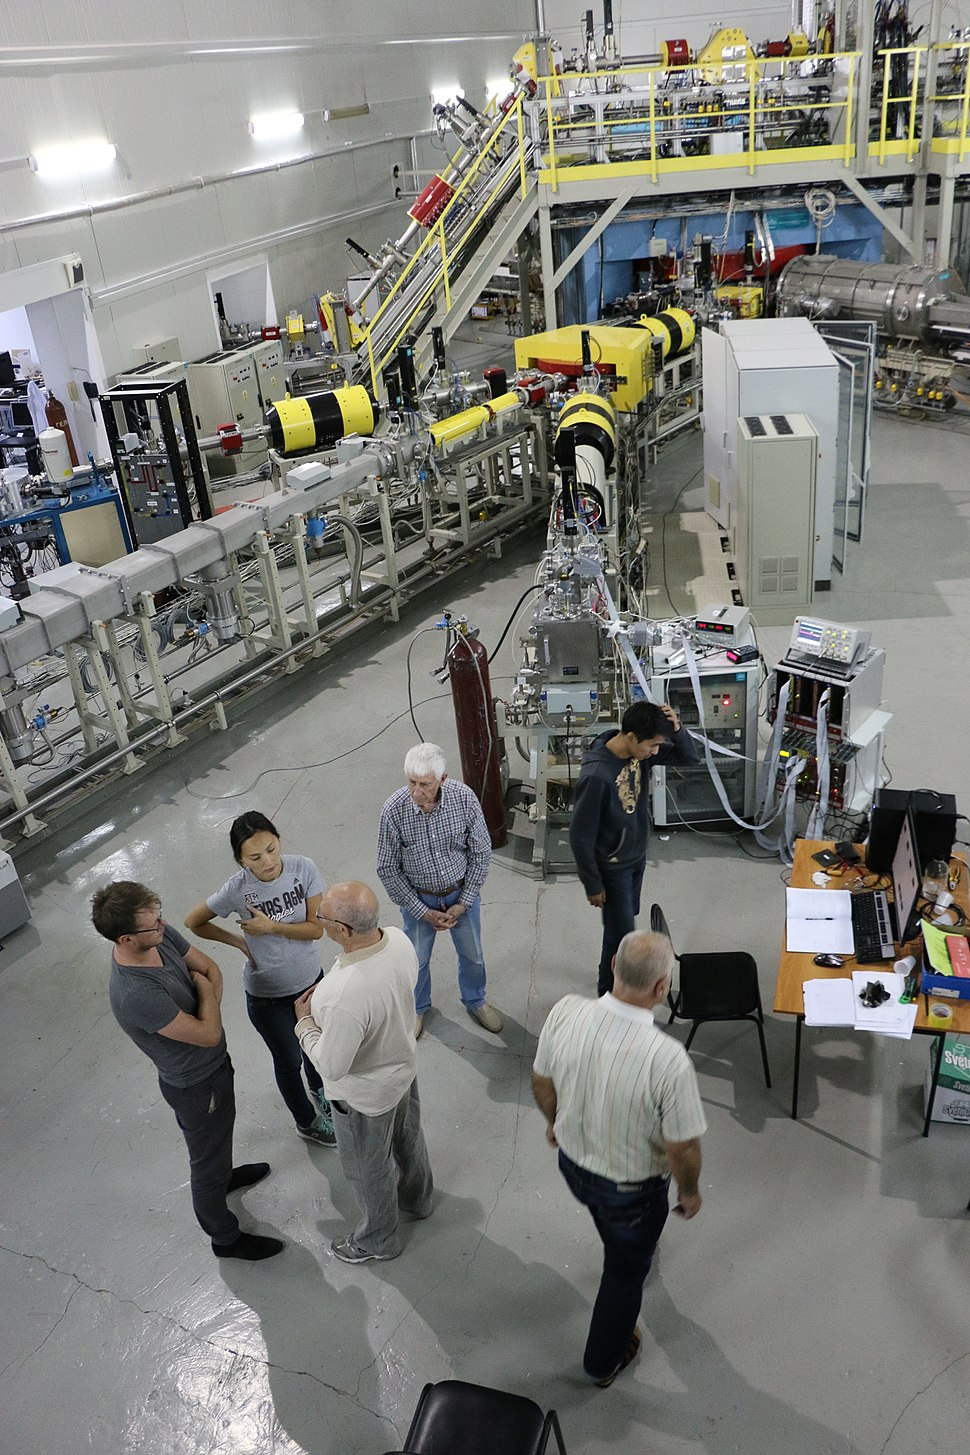 The irradiation experiments at the ion accelerator DC-60. Astana, Kazakhstan